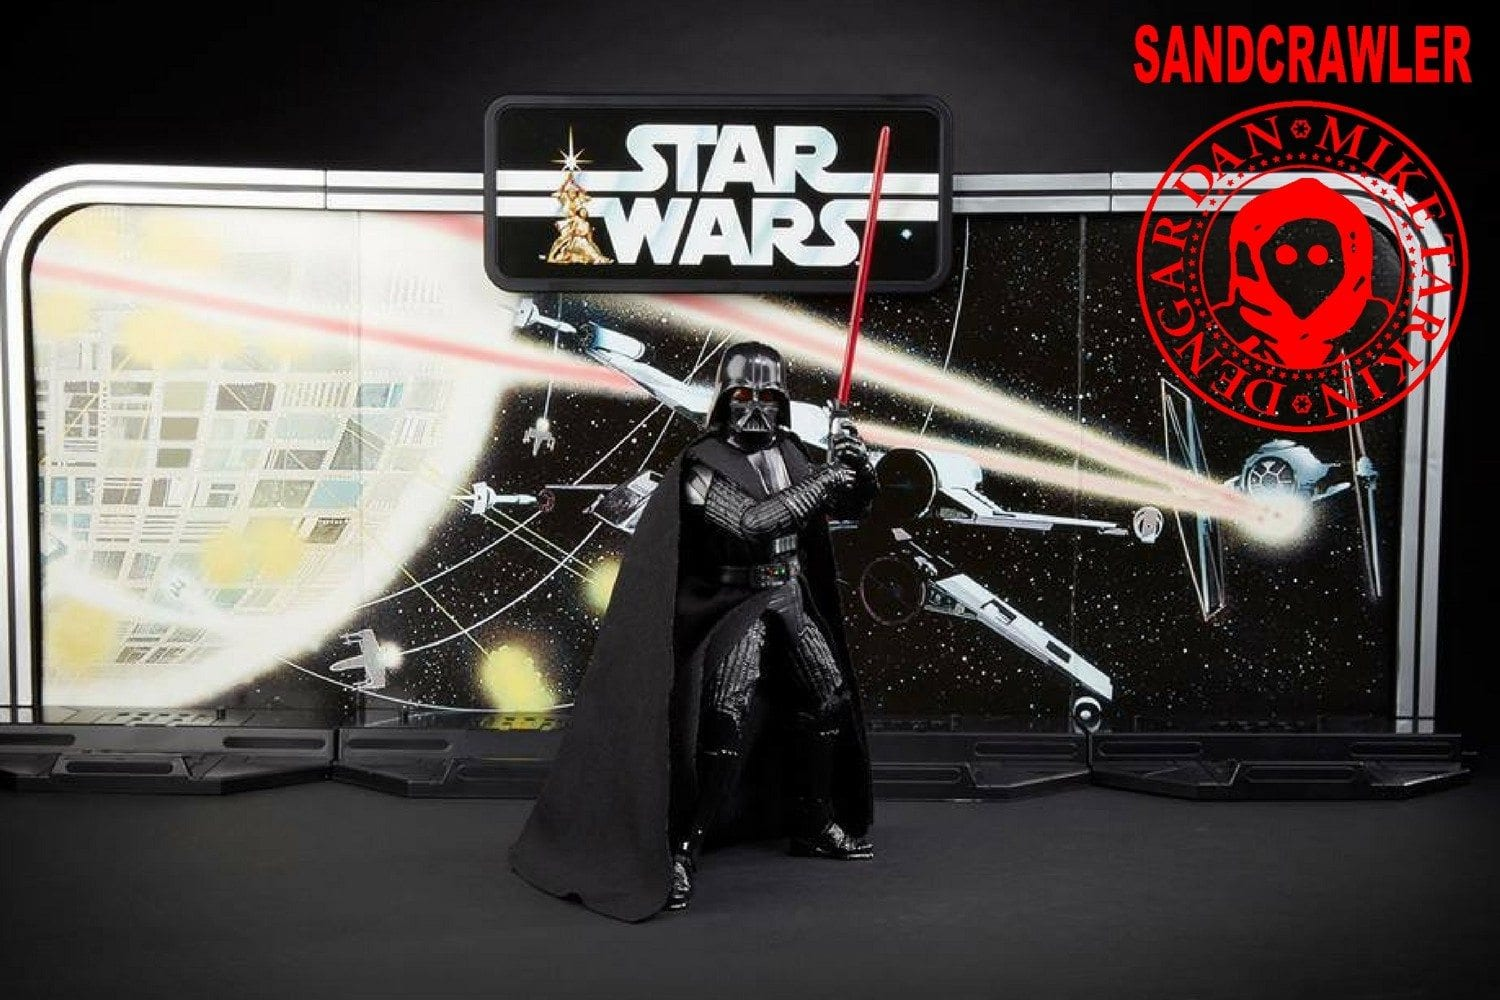 The Sandcrawler #17: New York Toy Fair 2017